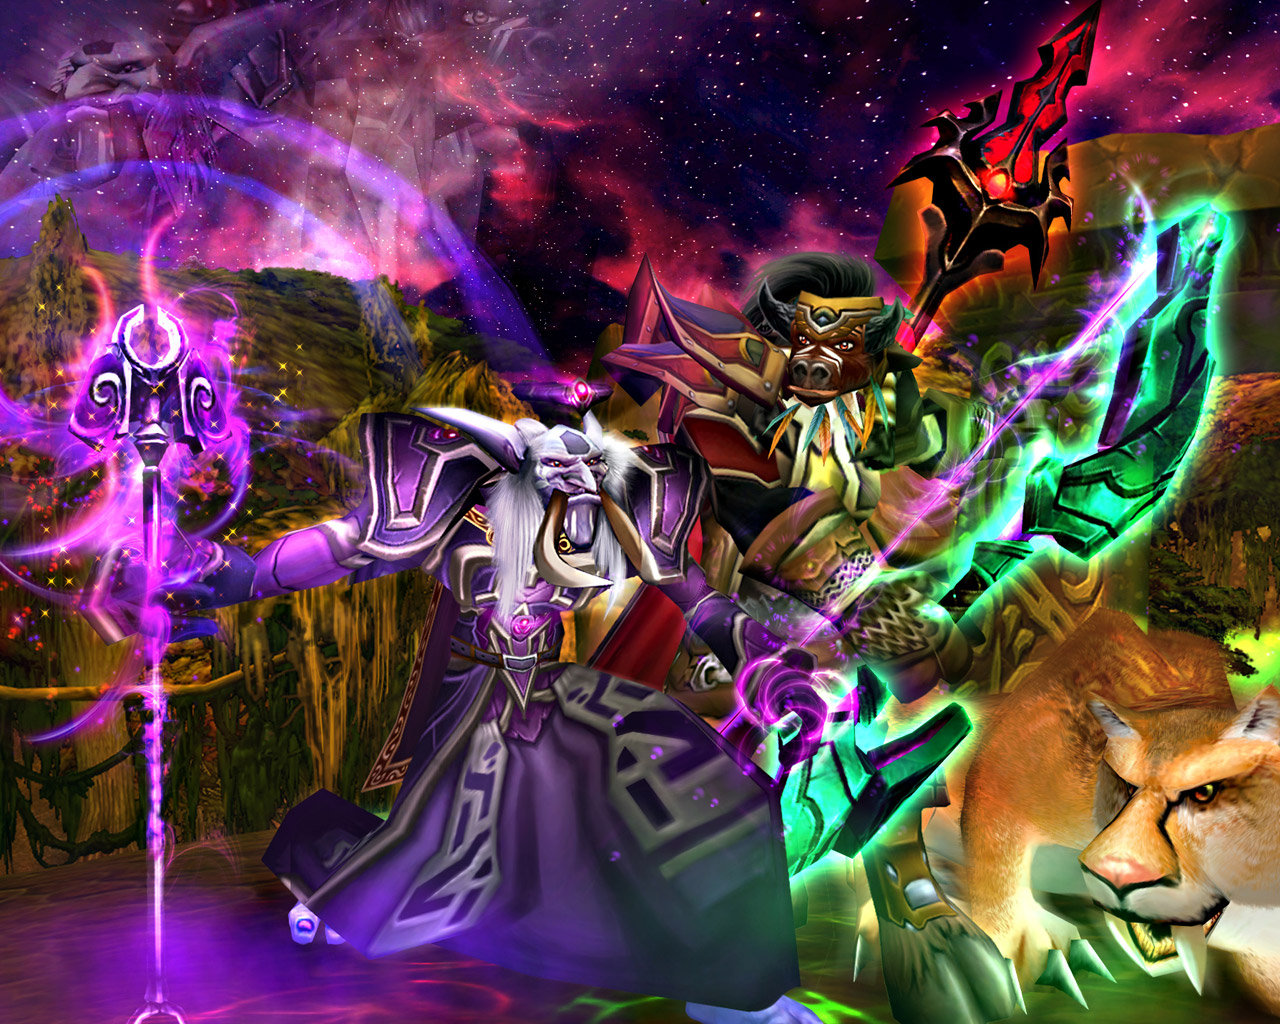 Awesome WoW Wallpapers   MMORPG Photo News   MMOsitecom 1280x1024